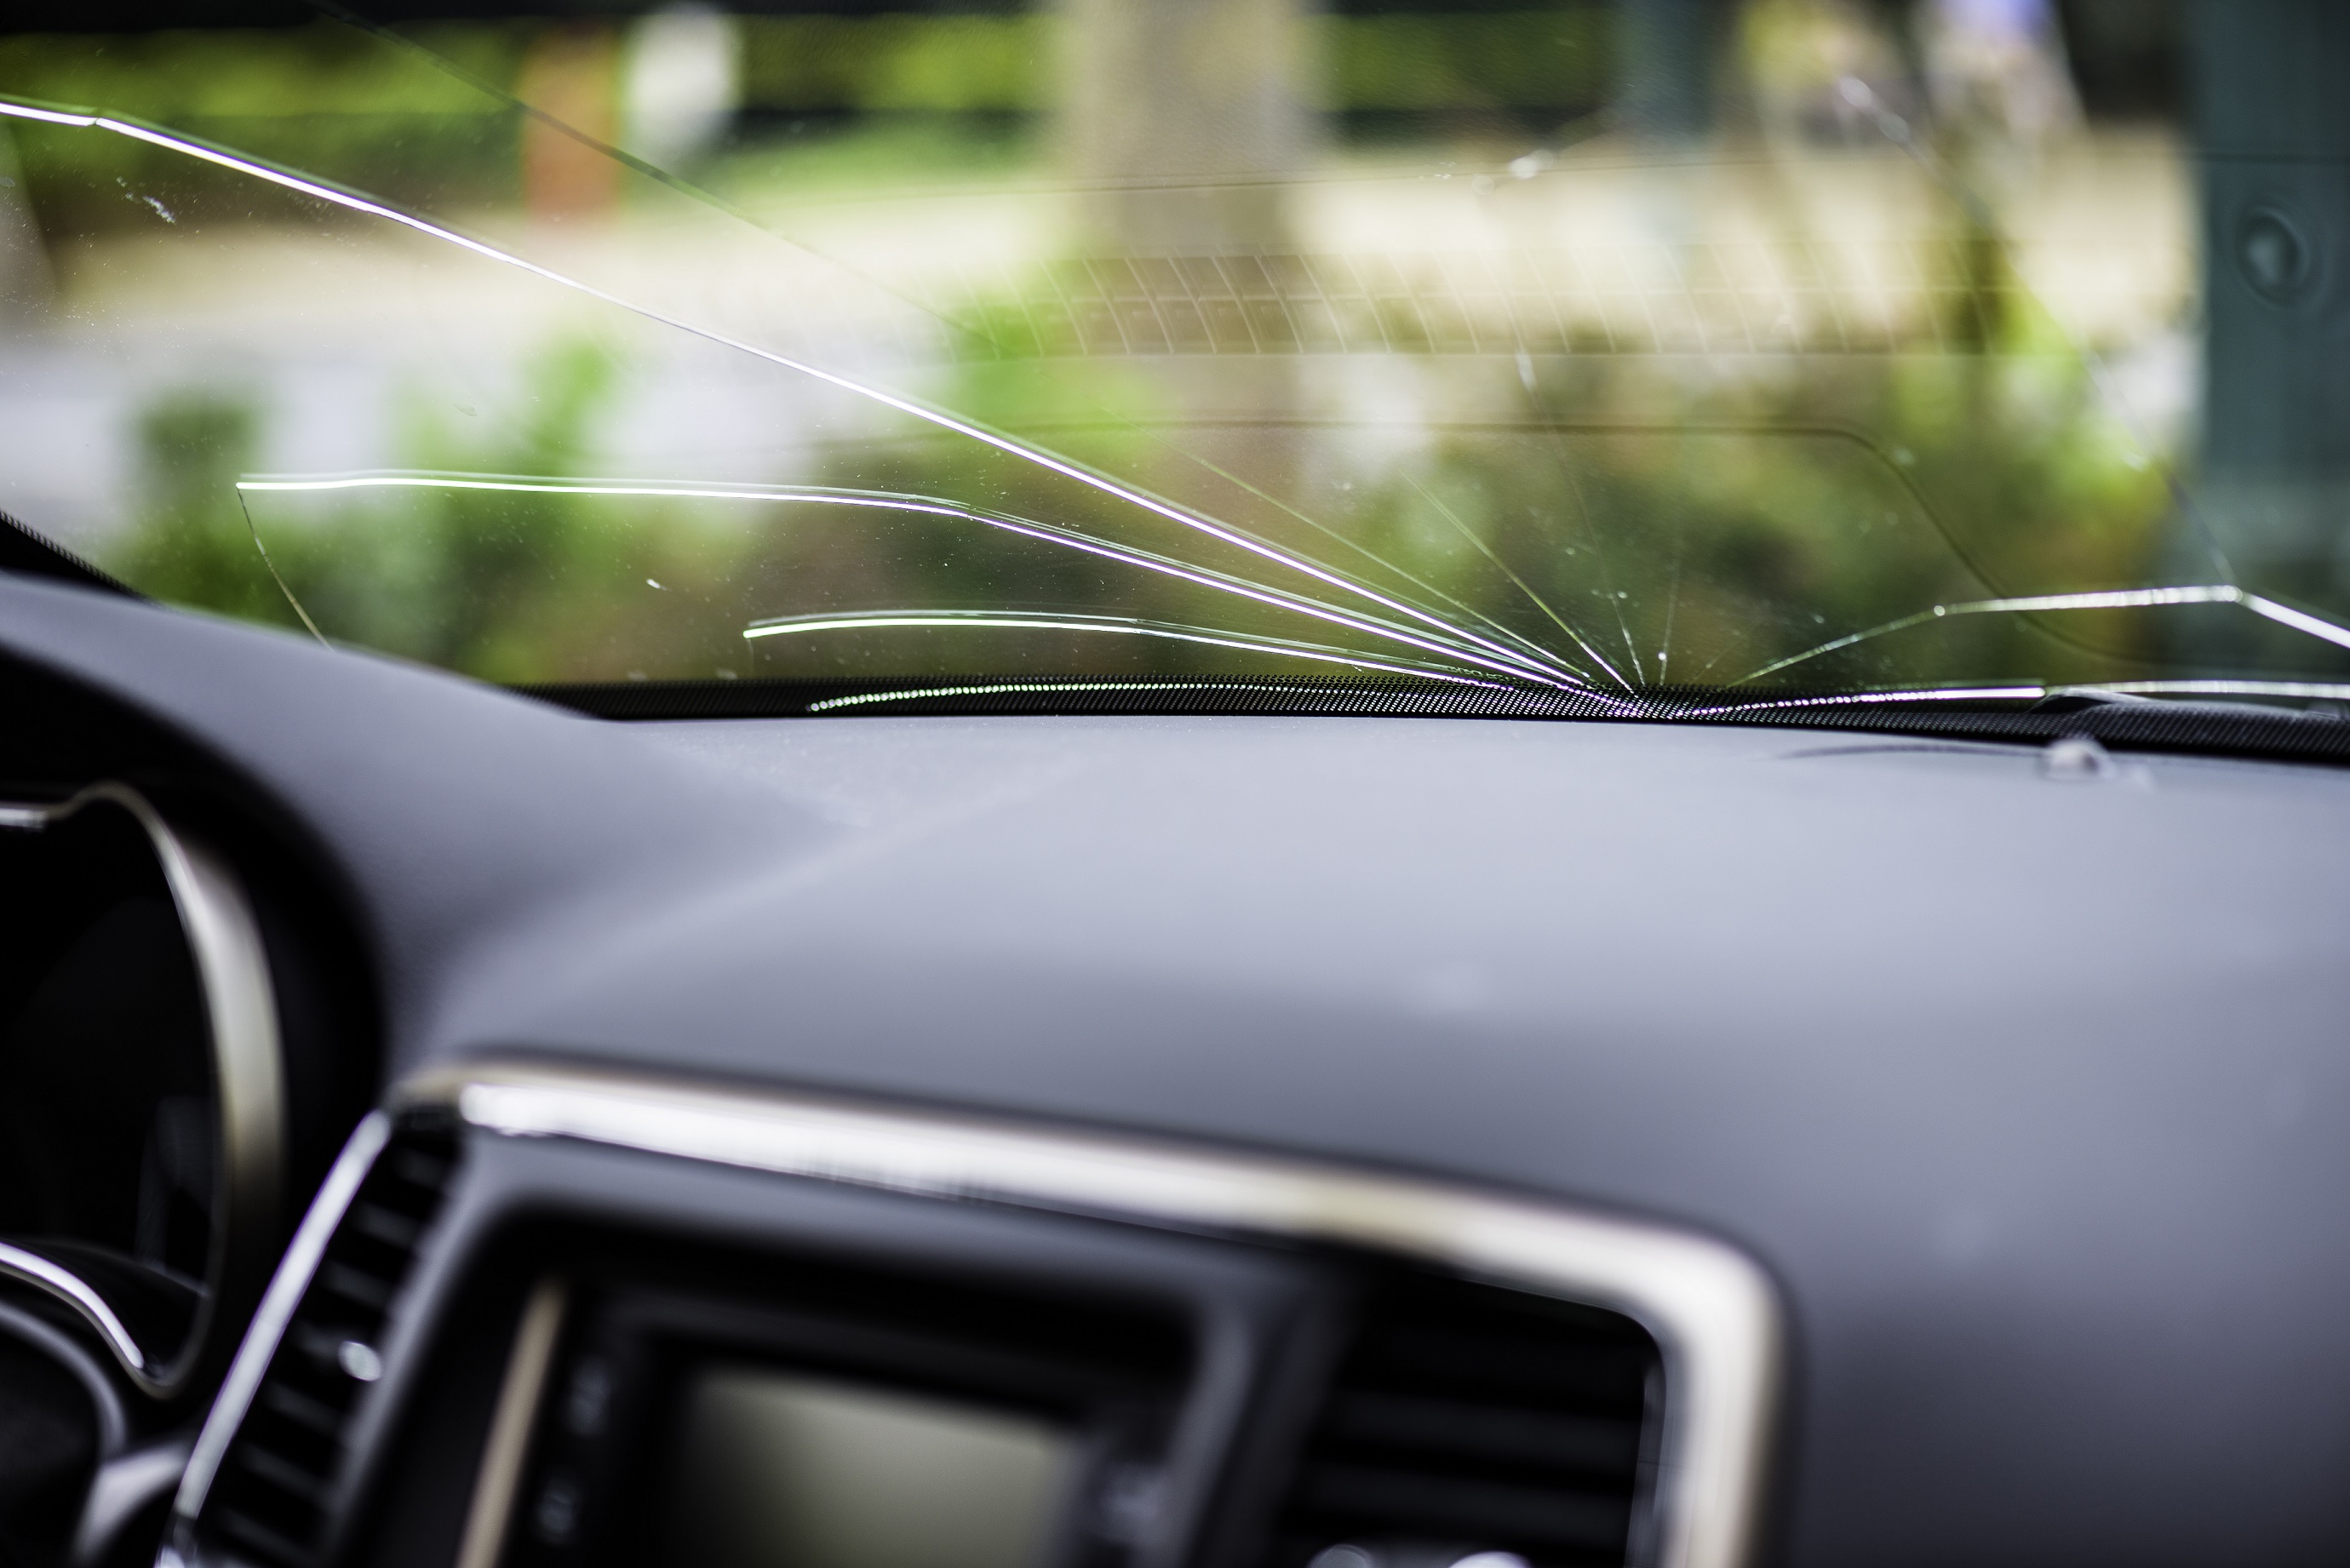 Auto Window Repair Near Me >> Find Auto Glass Repair Shops With Verified Customer Reviews